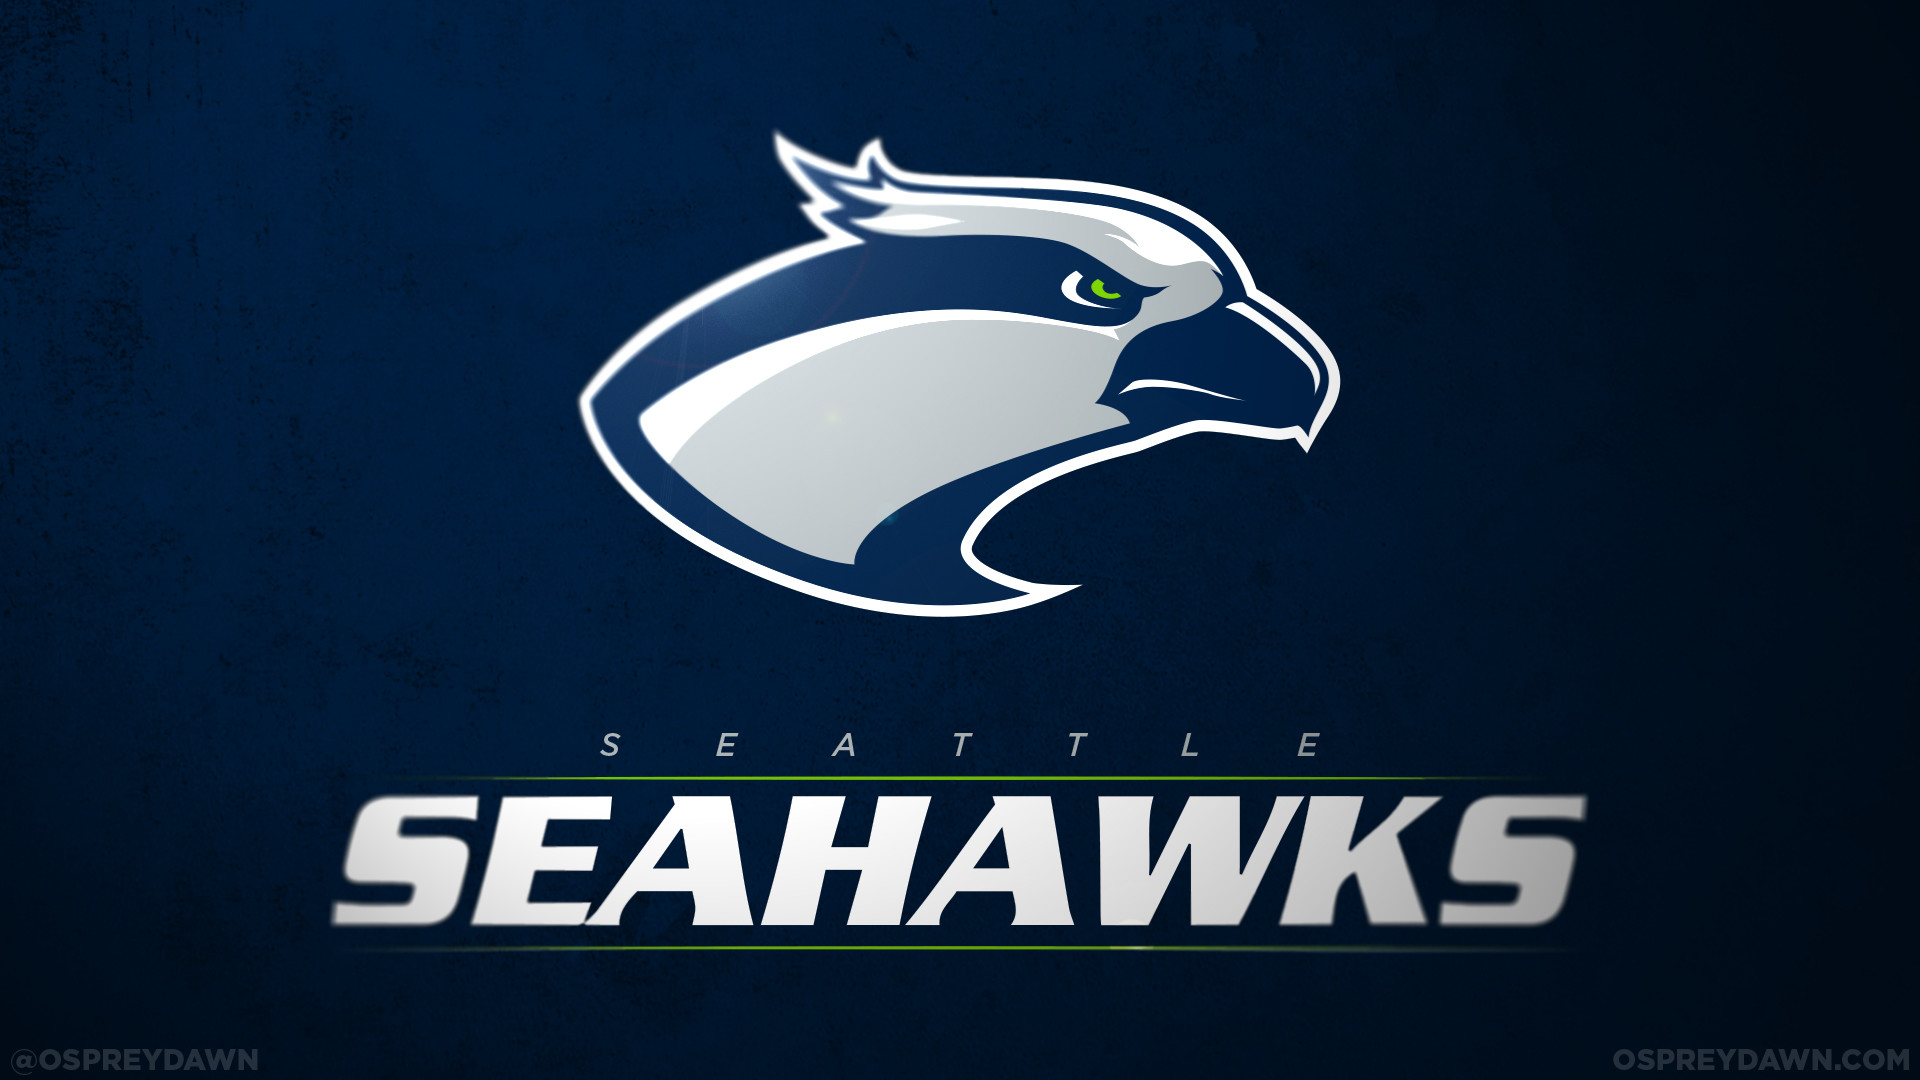 1920x1080 8. seattle seahawks wallpaper7